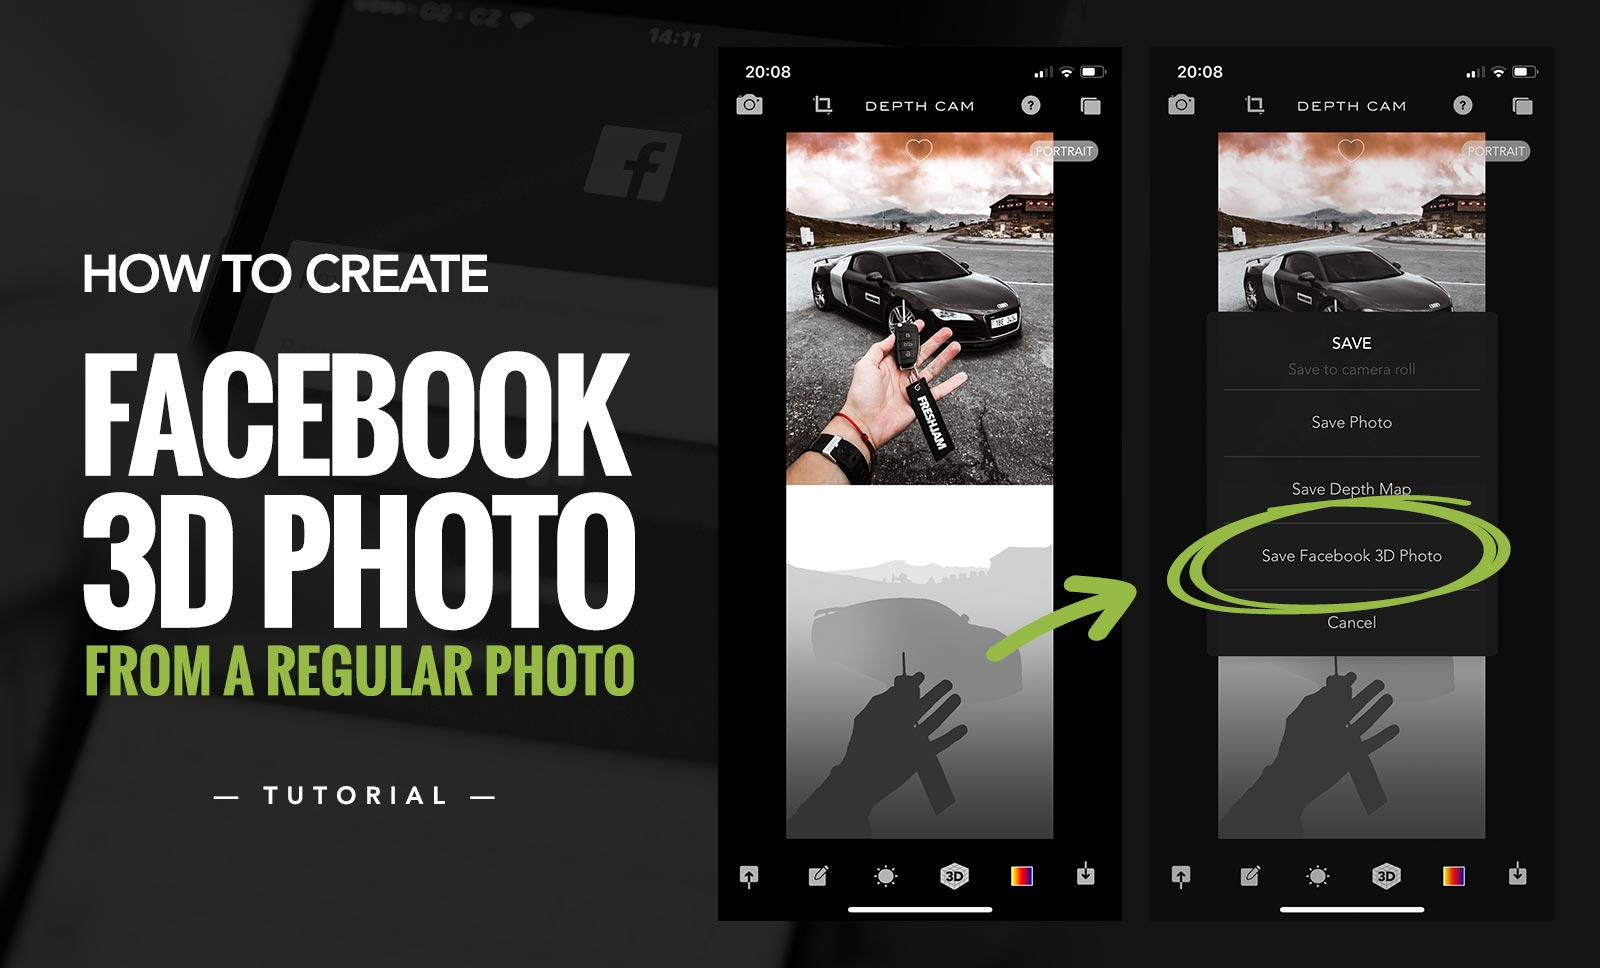 How To Create Facebook 3D Photo From a Regular Photo | picjumbo blog